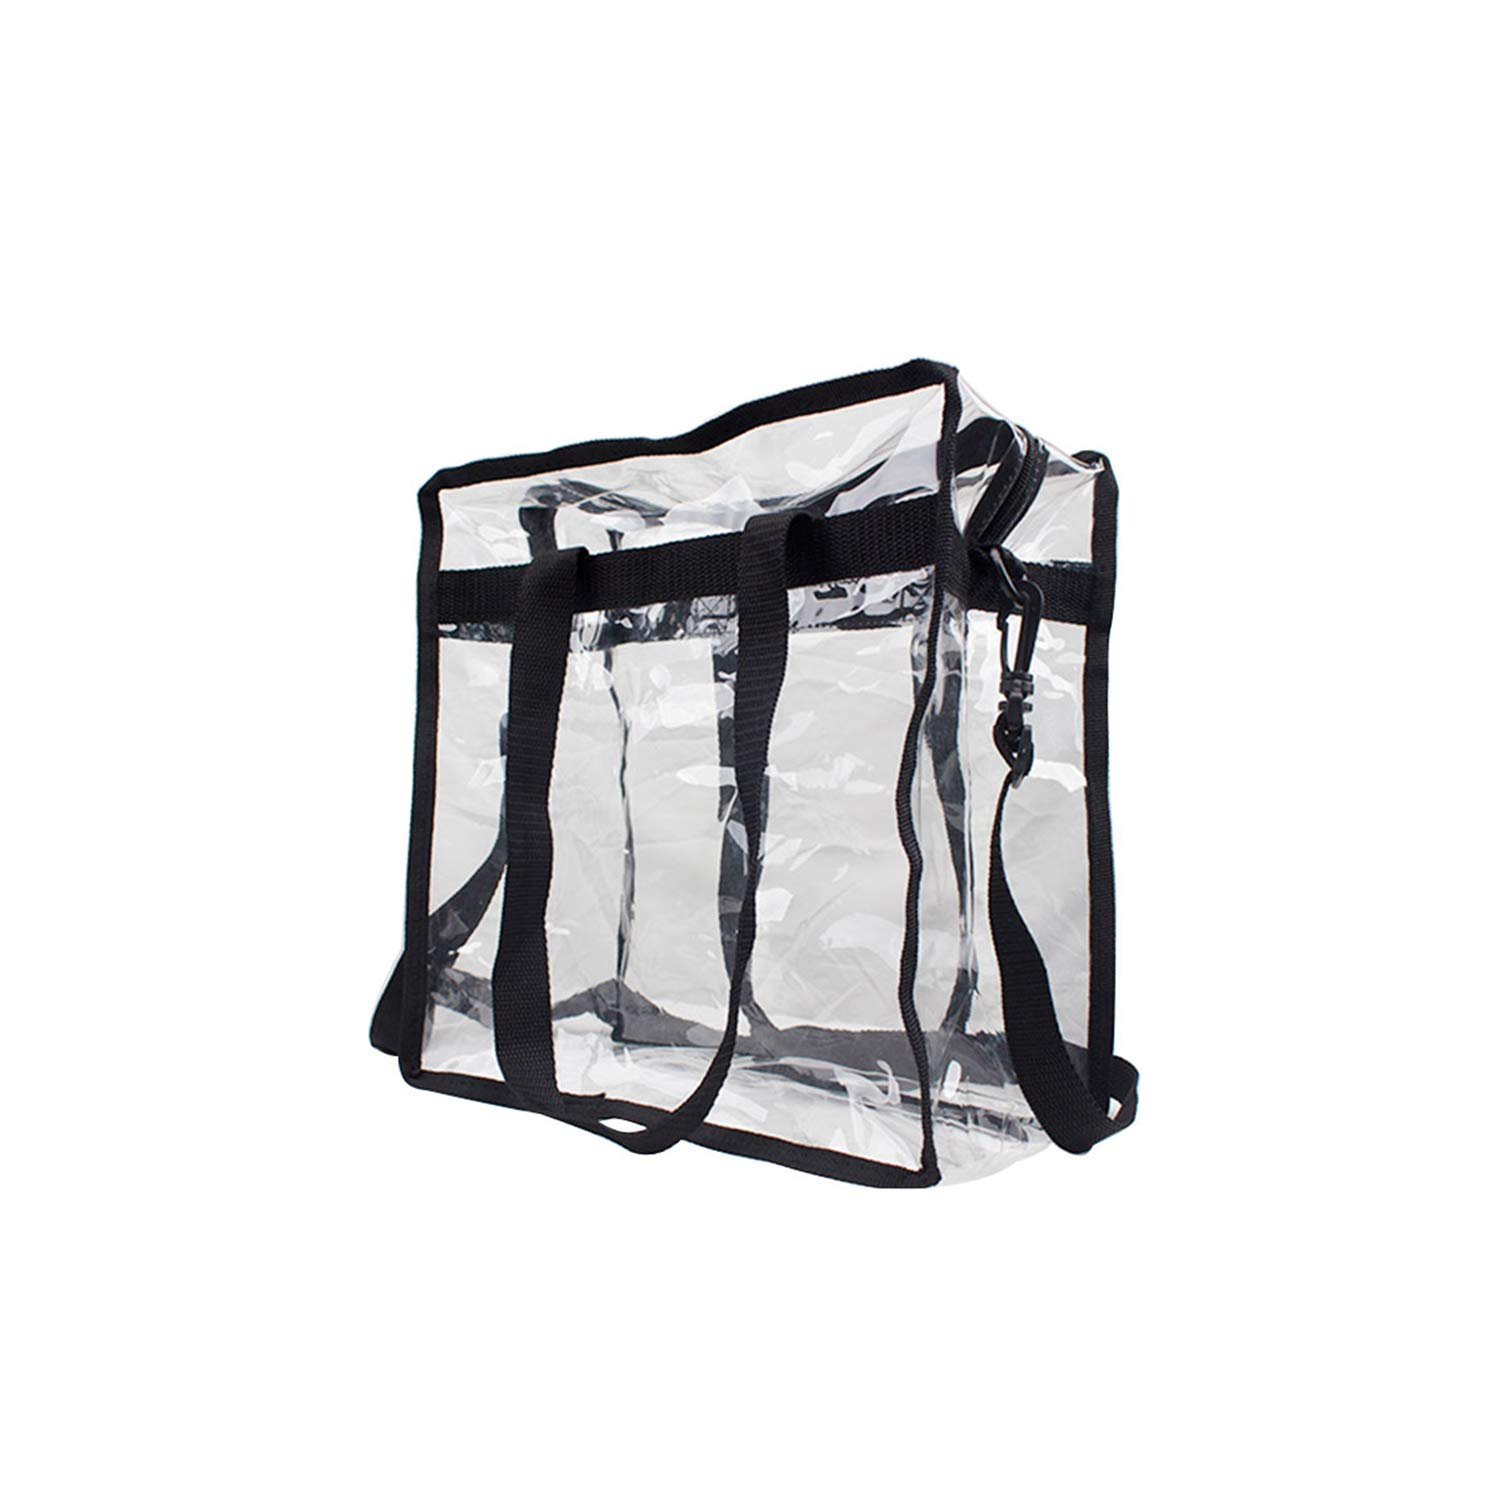 """Premium Clear Stadium Approved Bag - Clear Tote Bag with Cross Body Messenger Adjustable Shoulder Strap-12"""" X 12"""" X 6"""" by Zuess (Image #4)"""